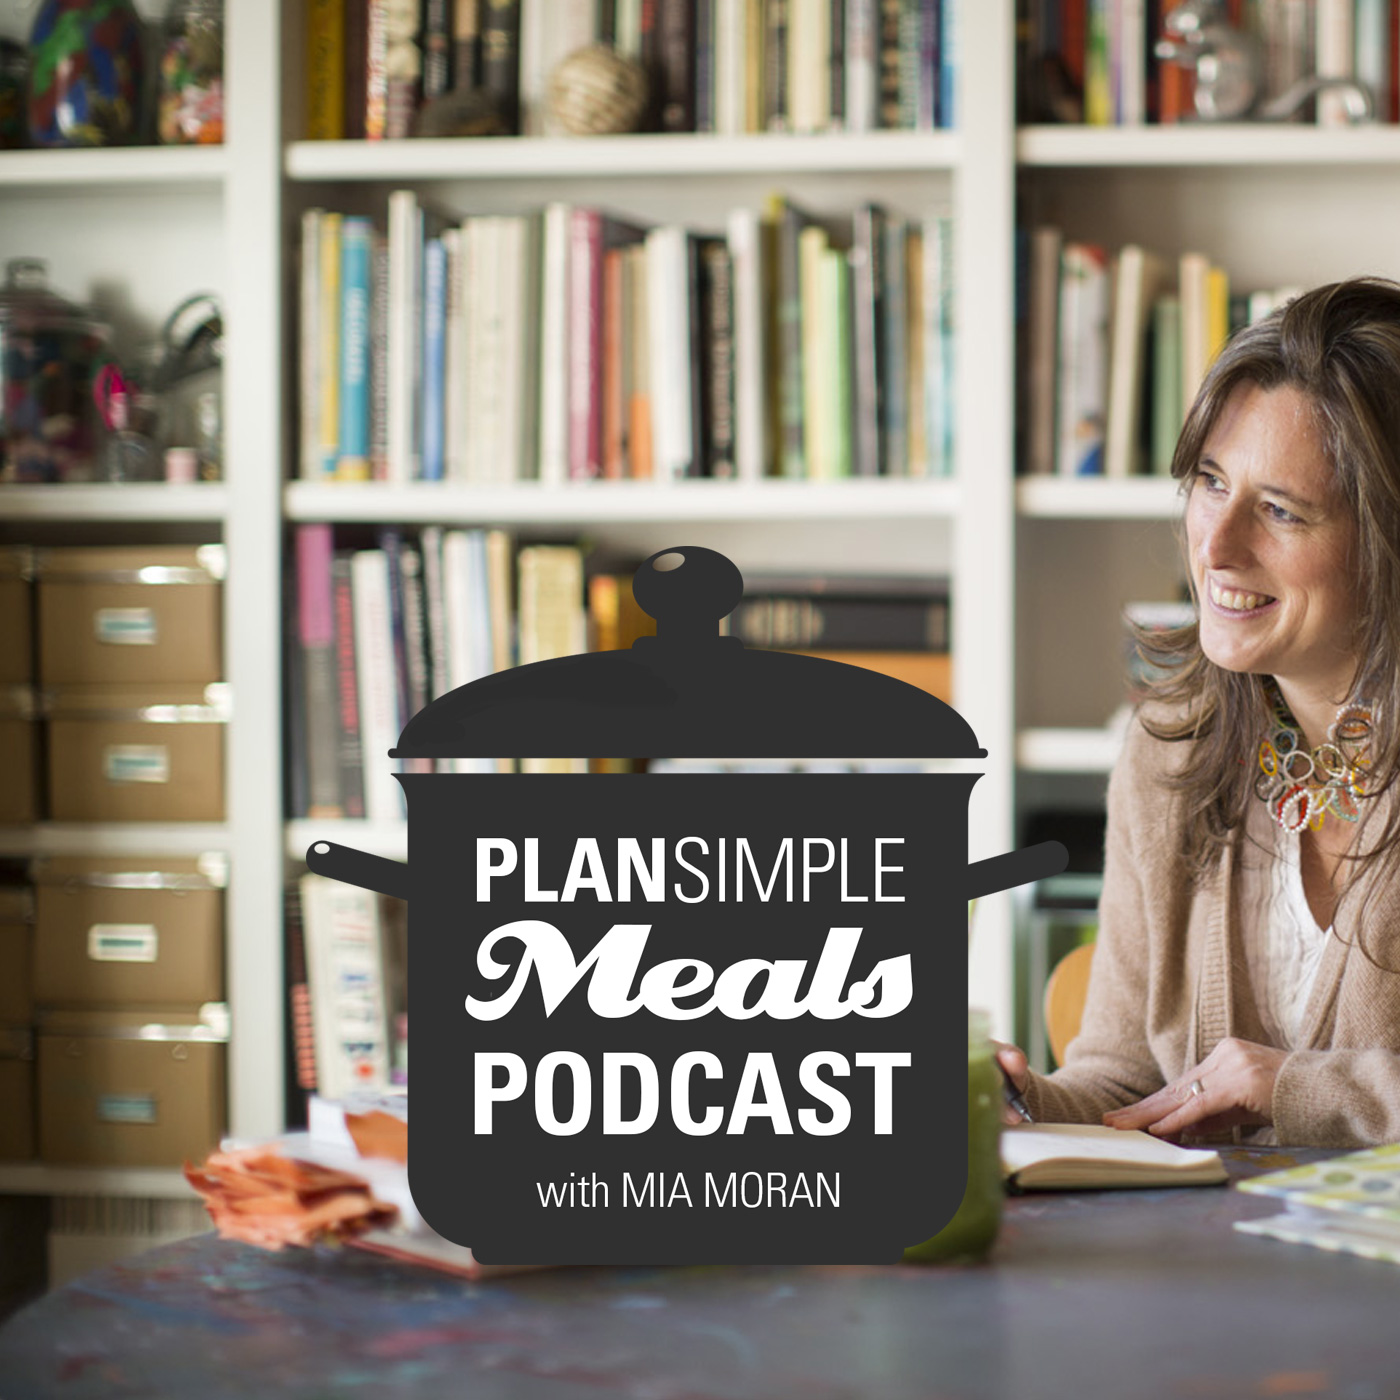 Plan Podcast Mia